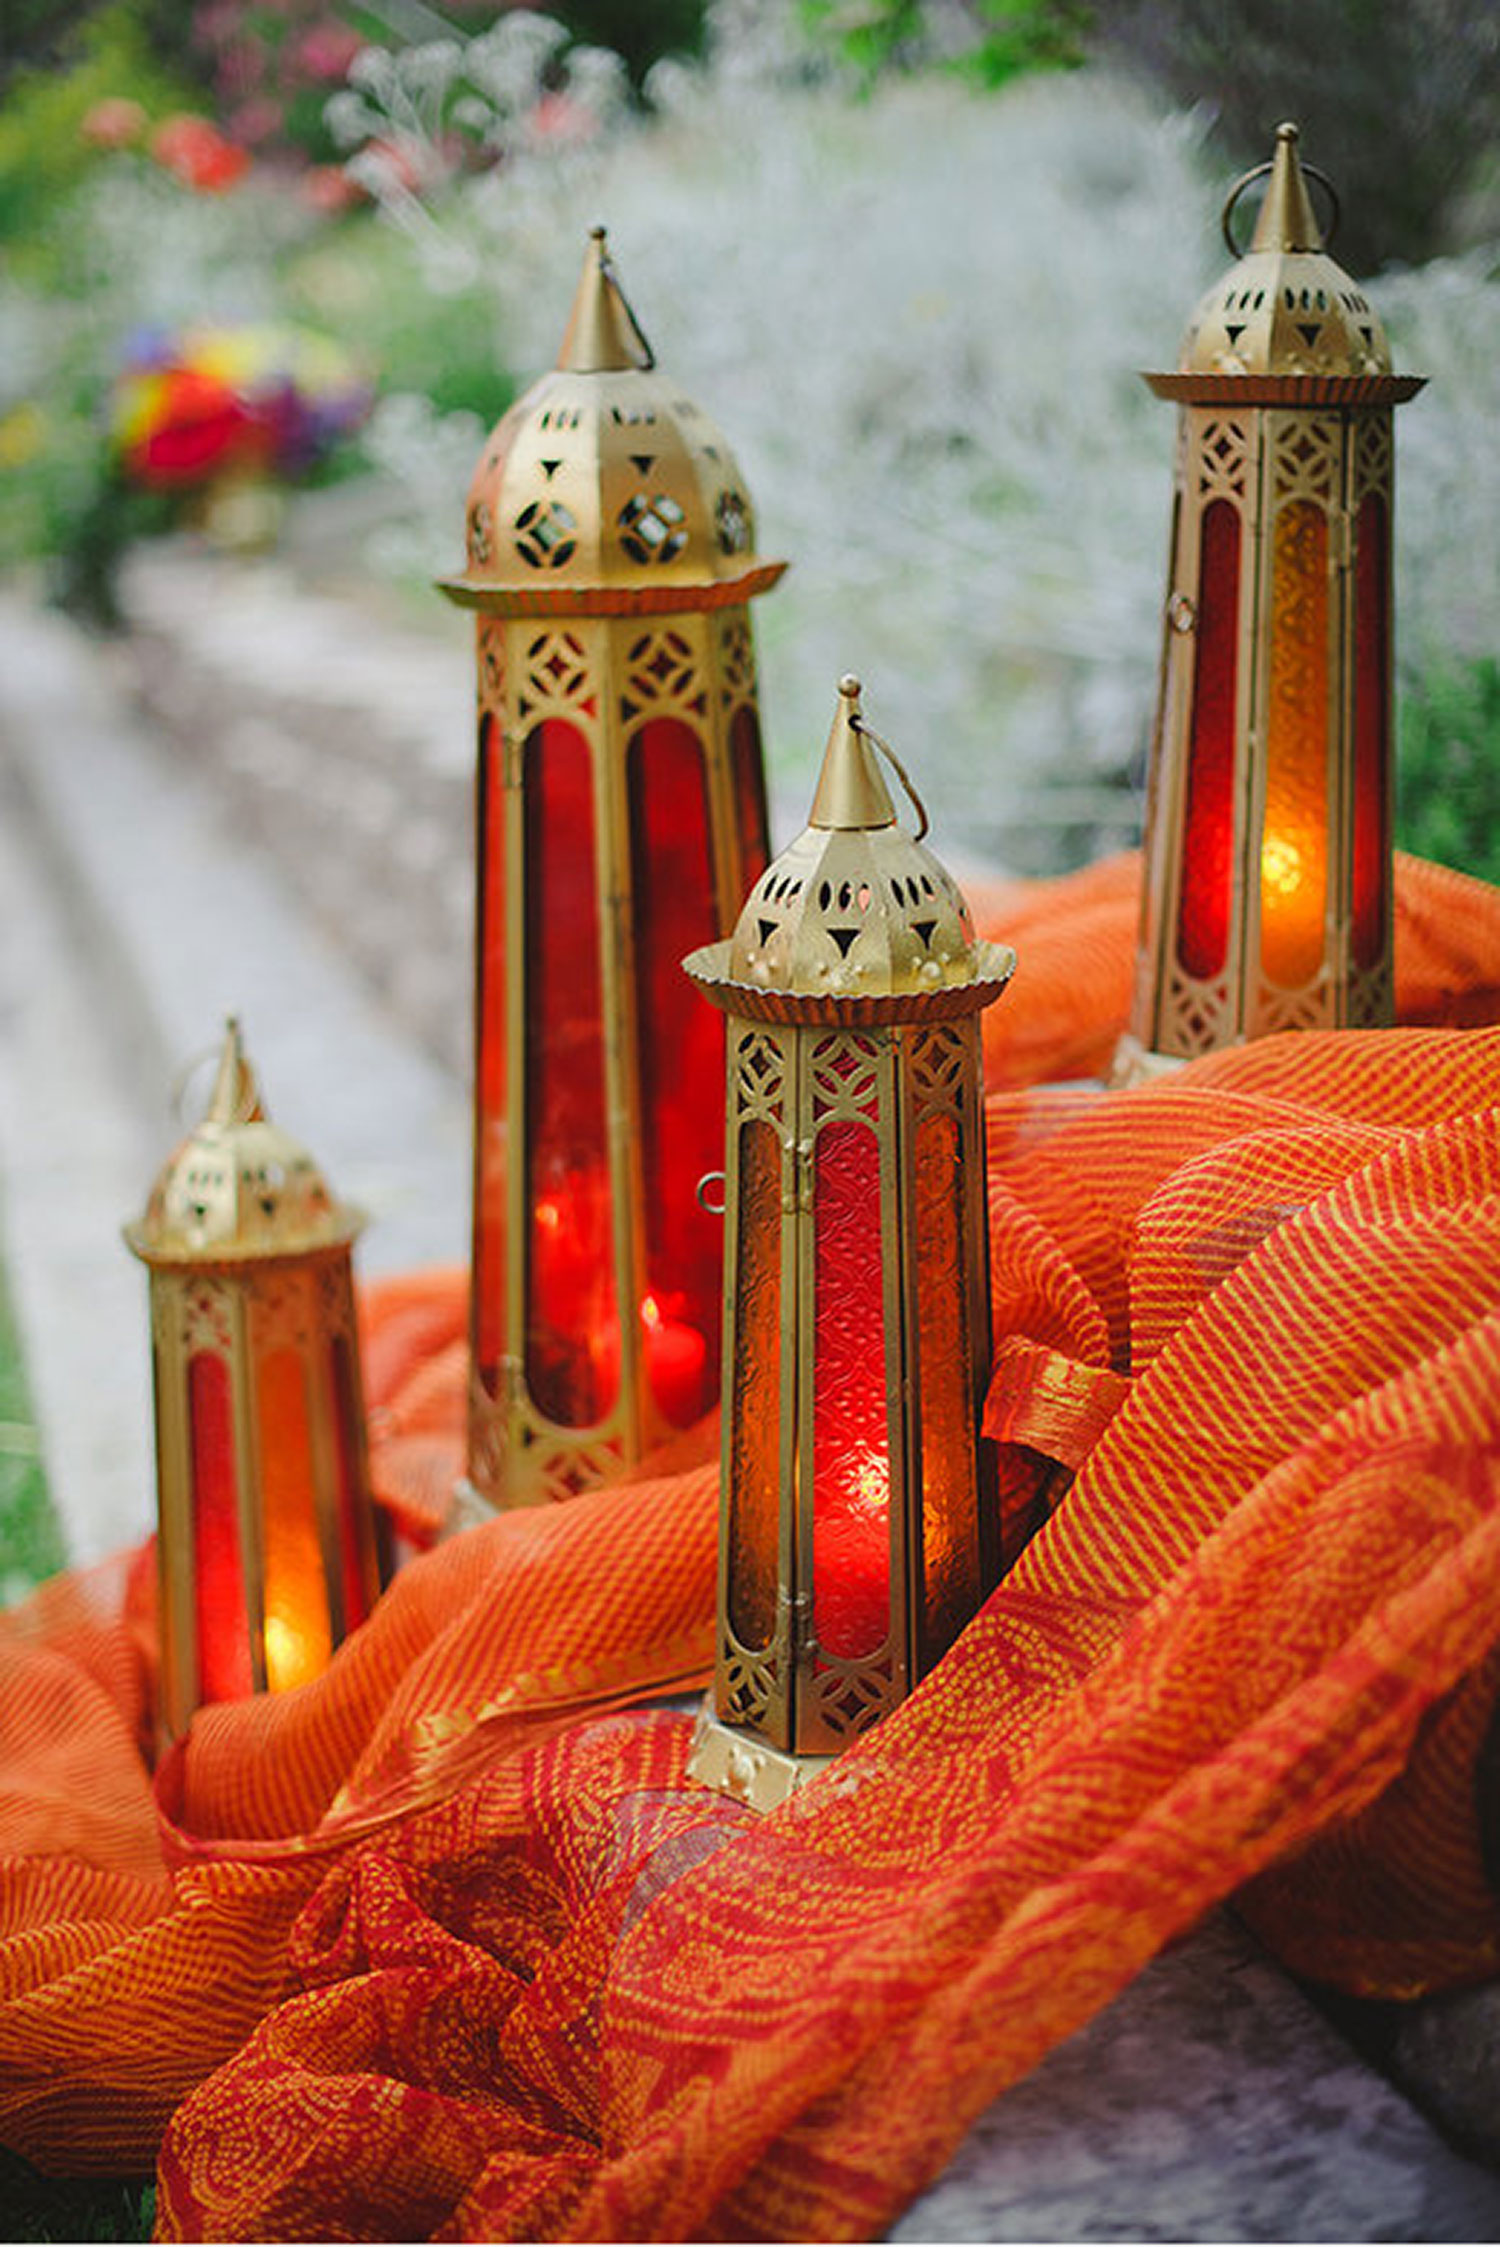 raj-tents-lighting-standing-lamps-with-candles.jpg